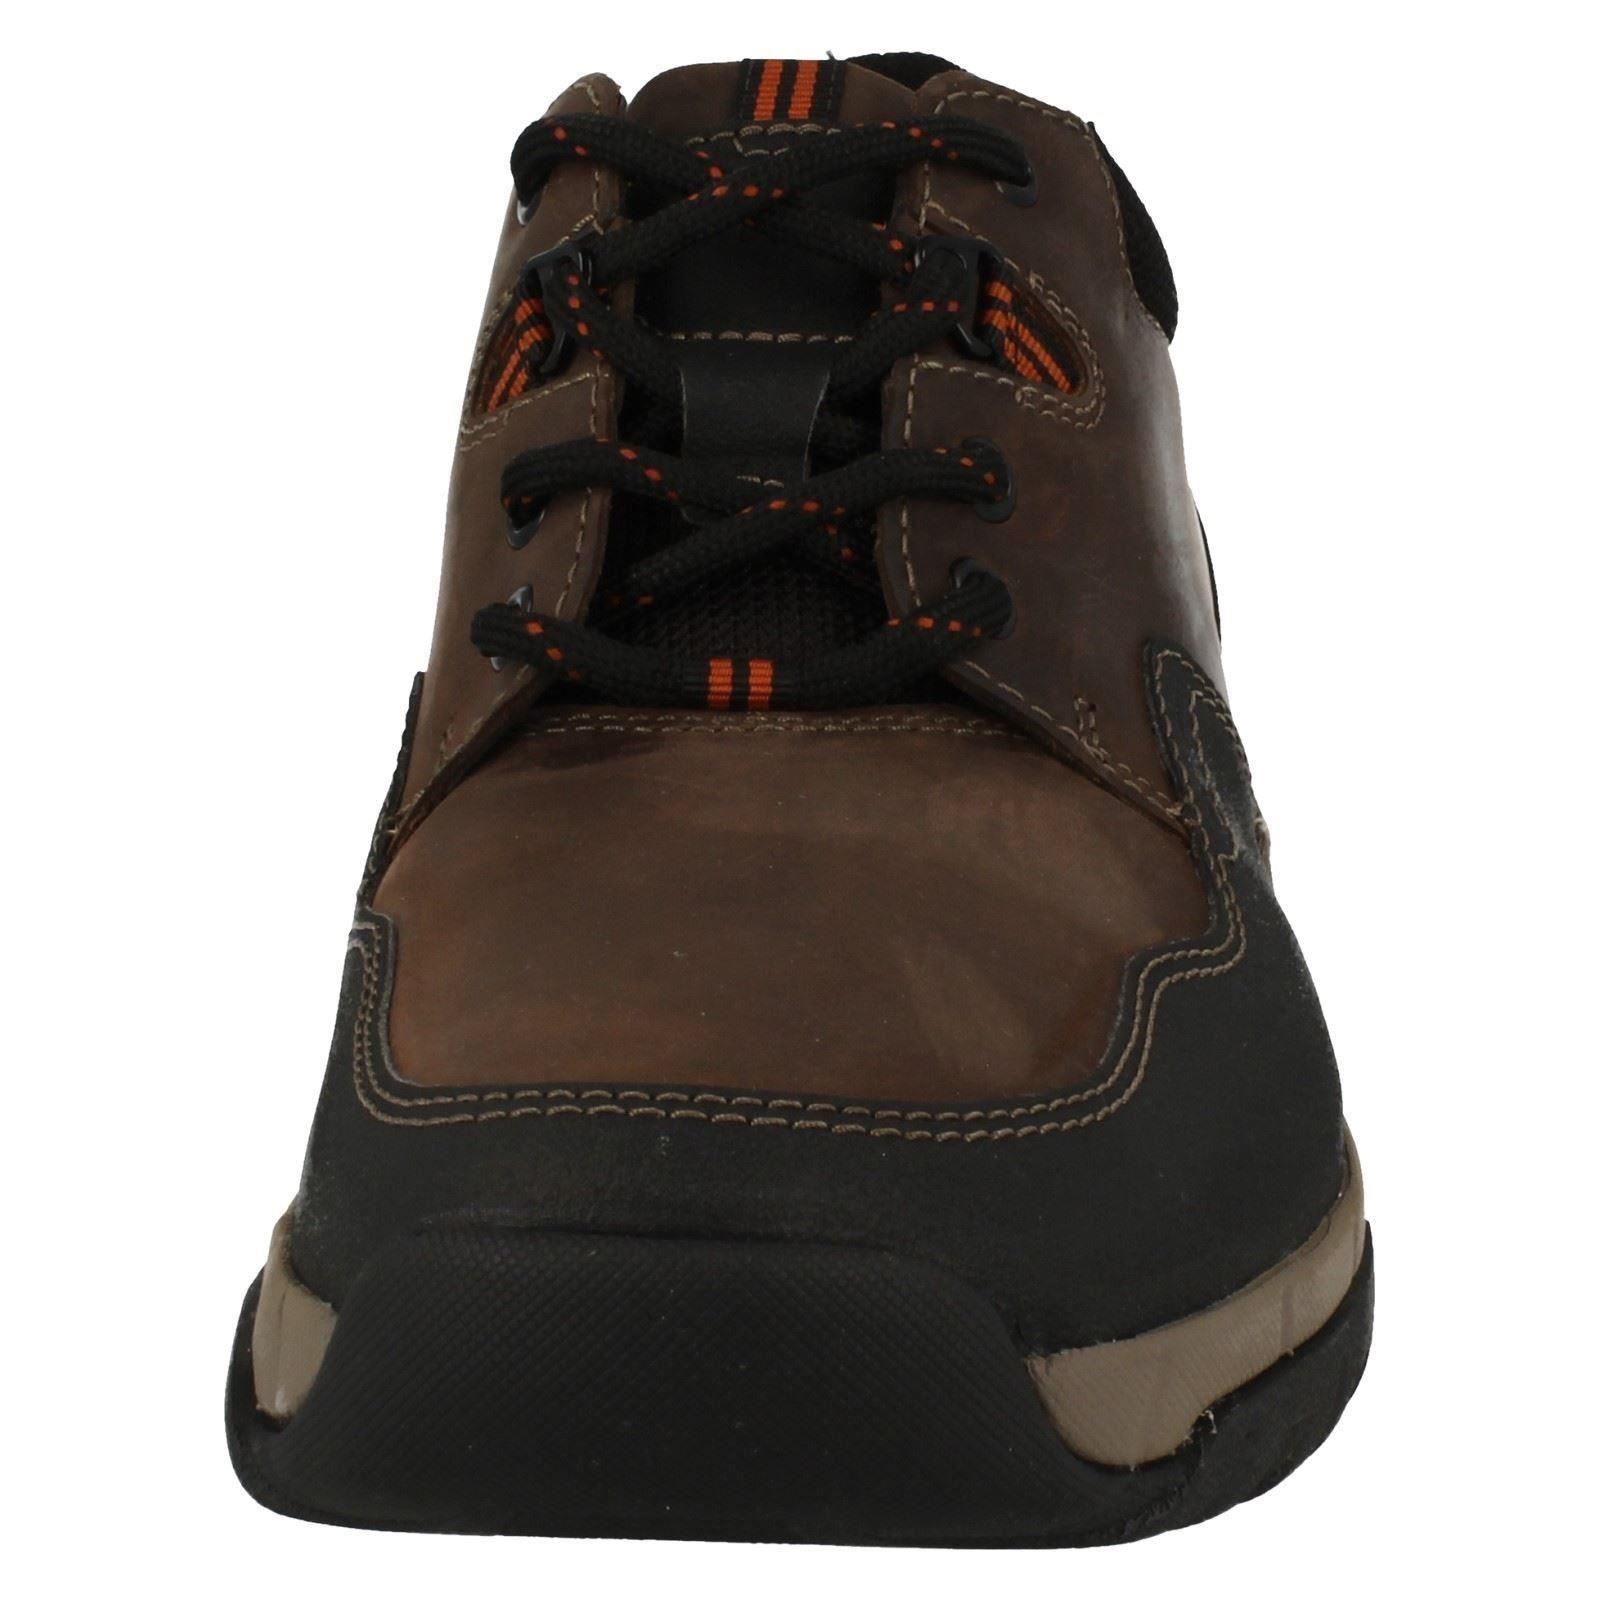 Clarks Mens Casual Waterproof Lace Up Shoes Walbeck Edge